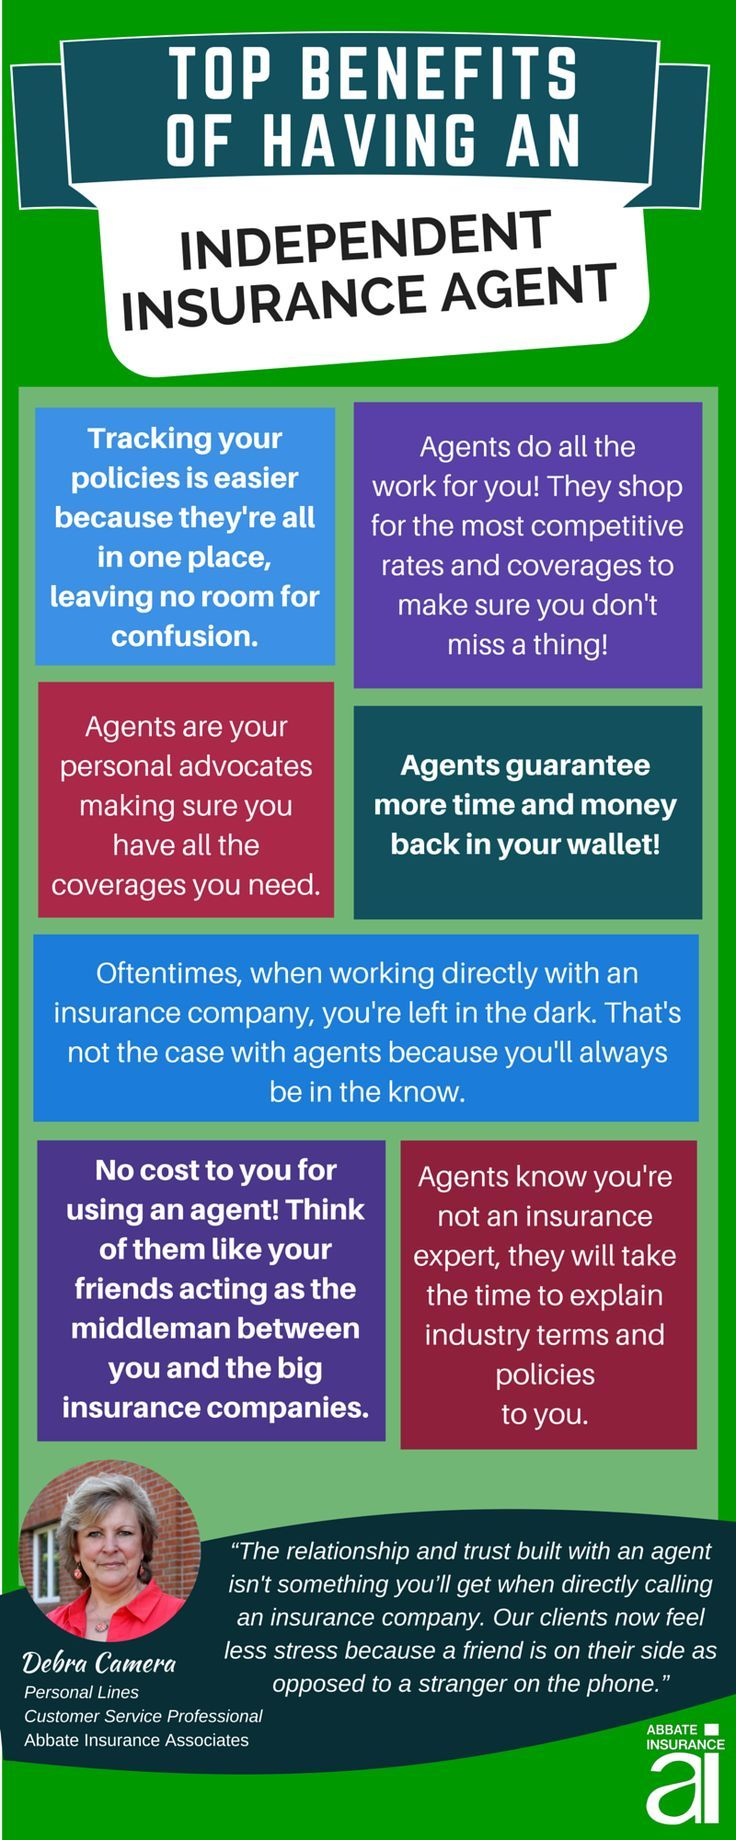 Top Benefits of Having an Independent Insurance Agent